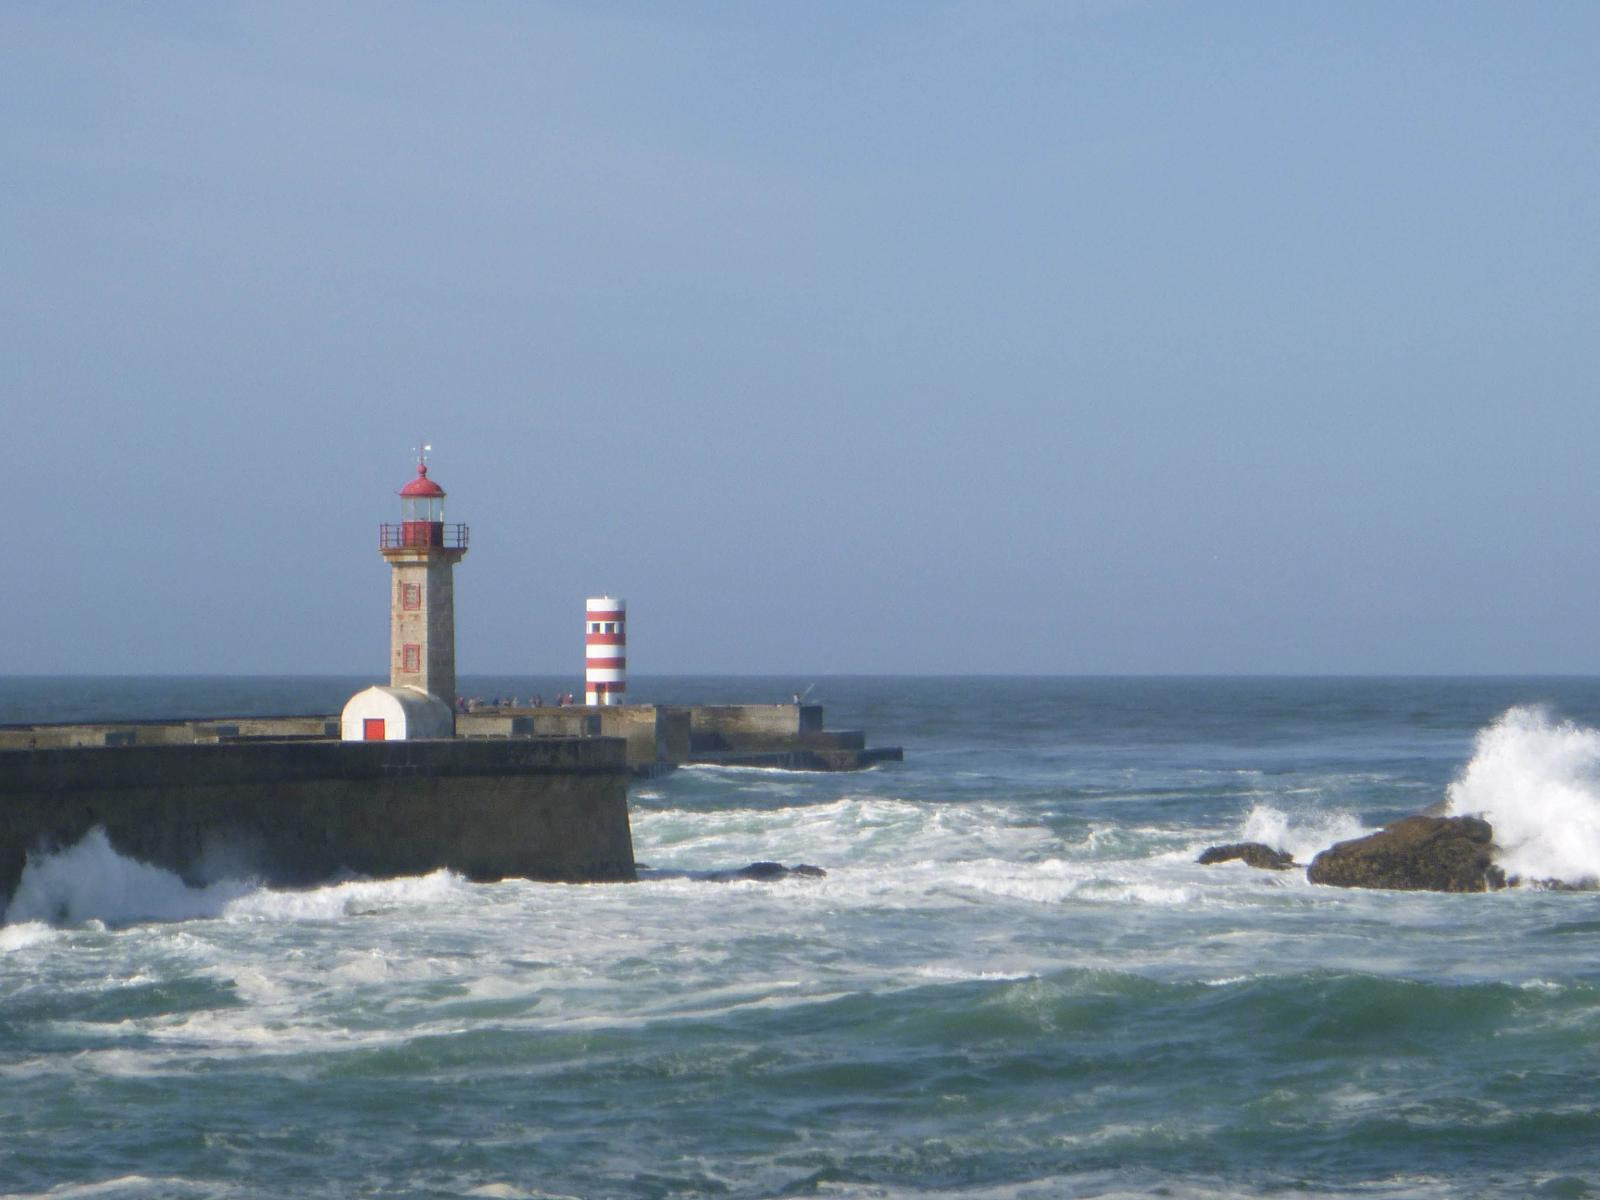 Photo of ORLA MARÍTIMA PORTO - VILA DO CONDE